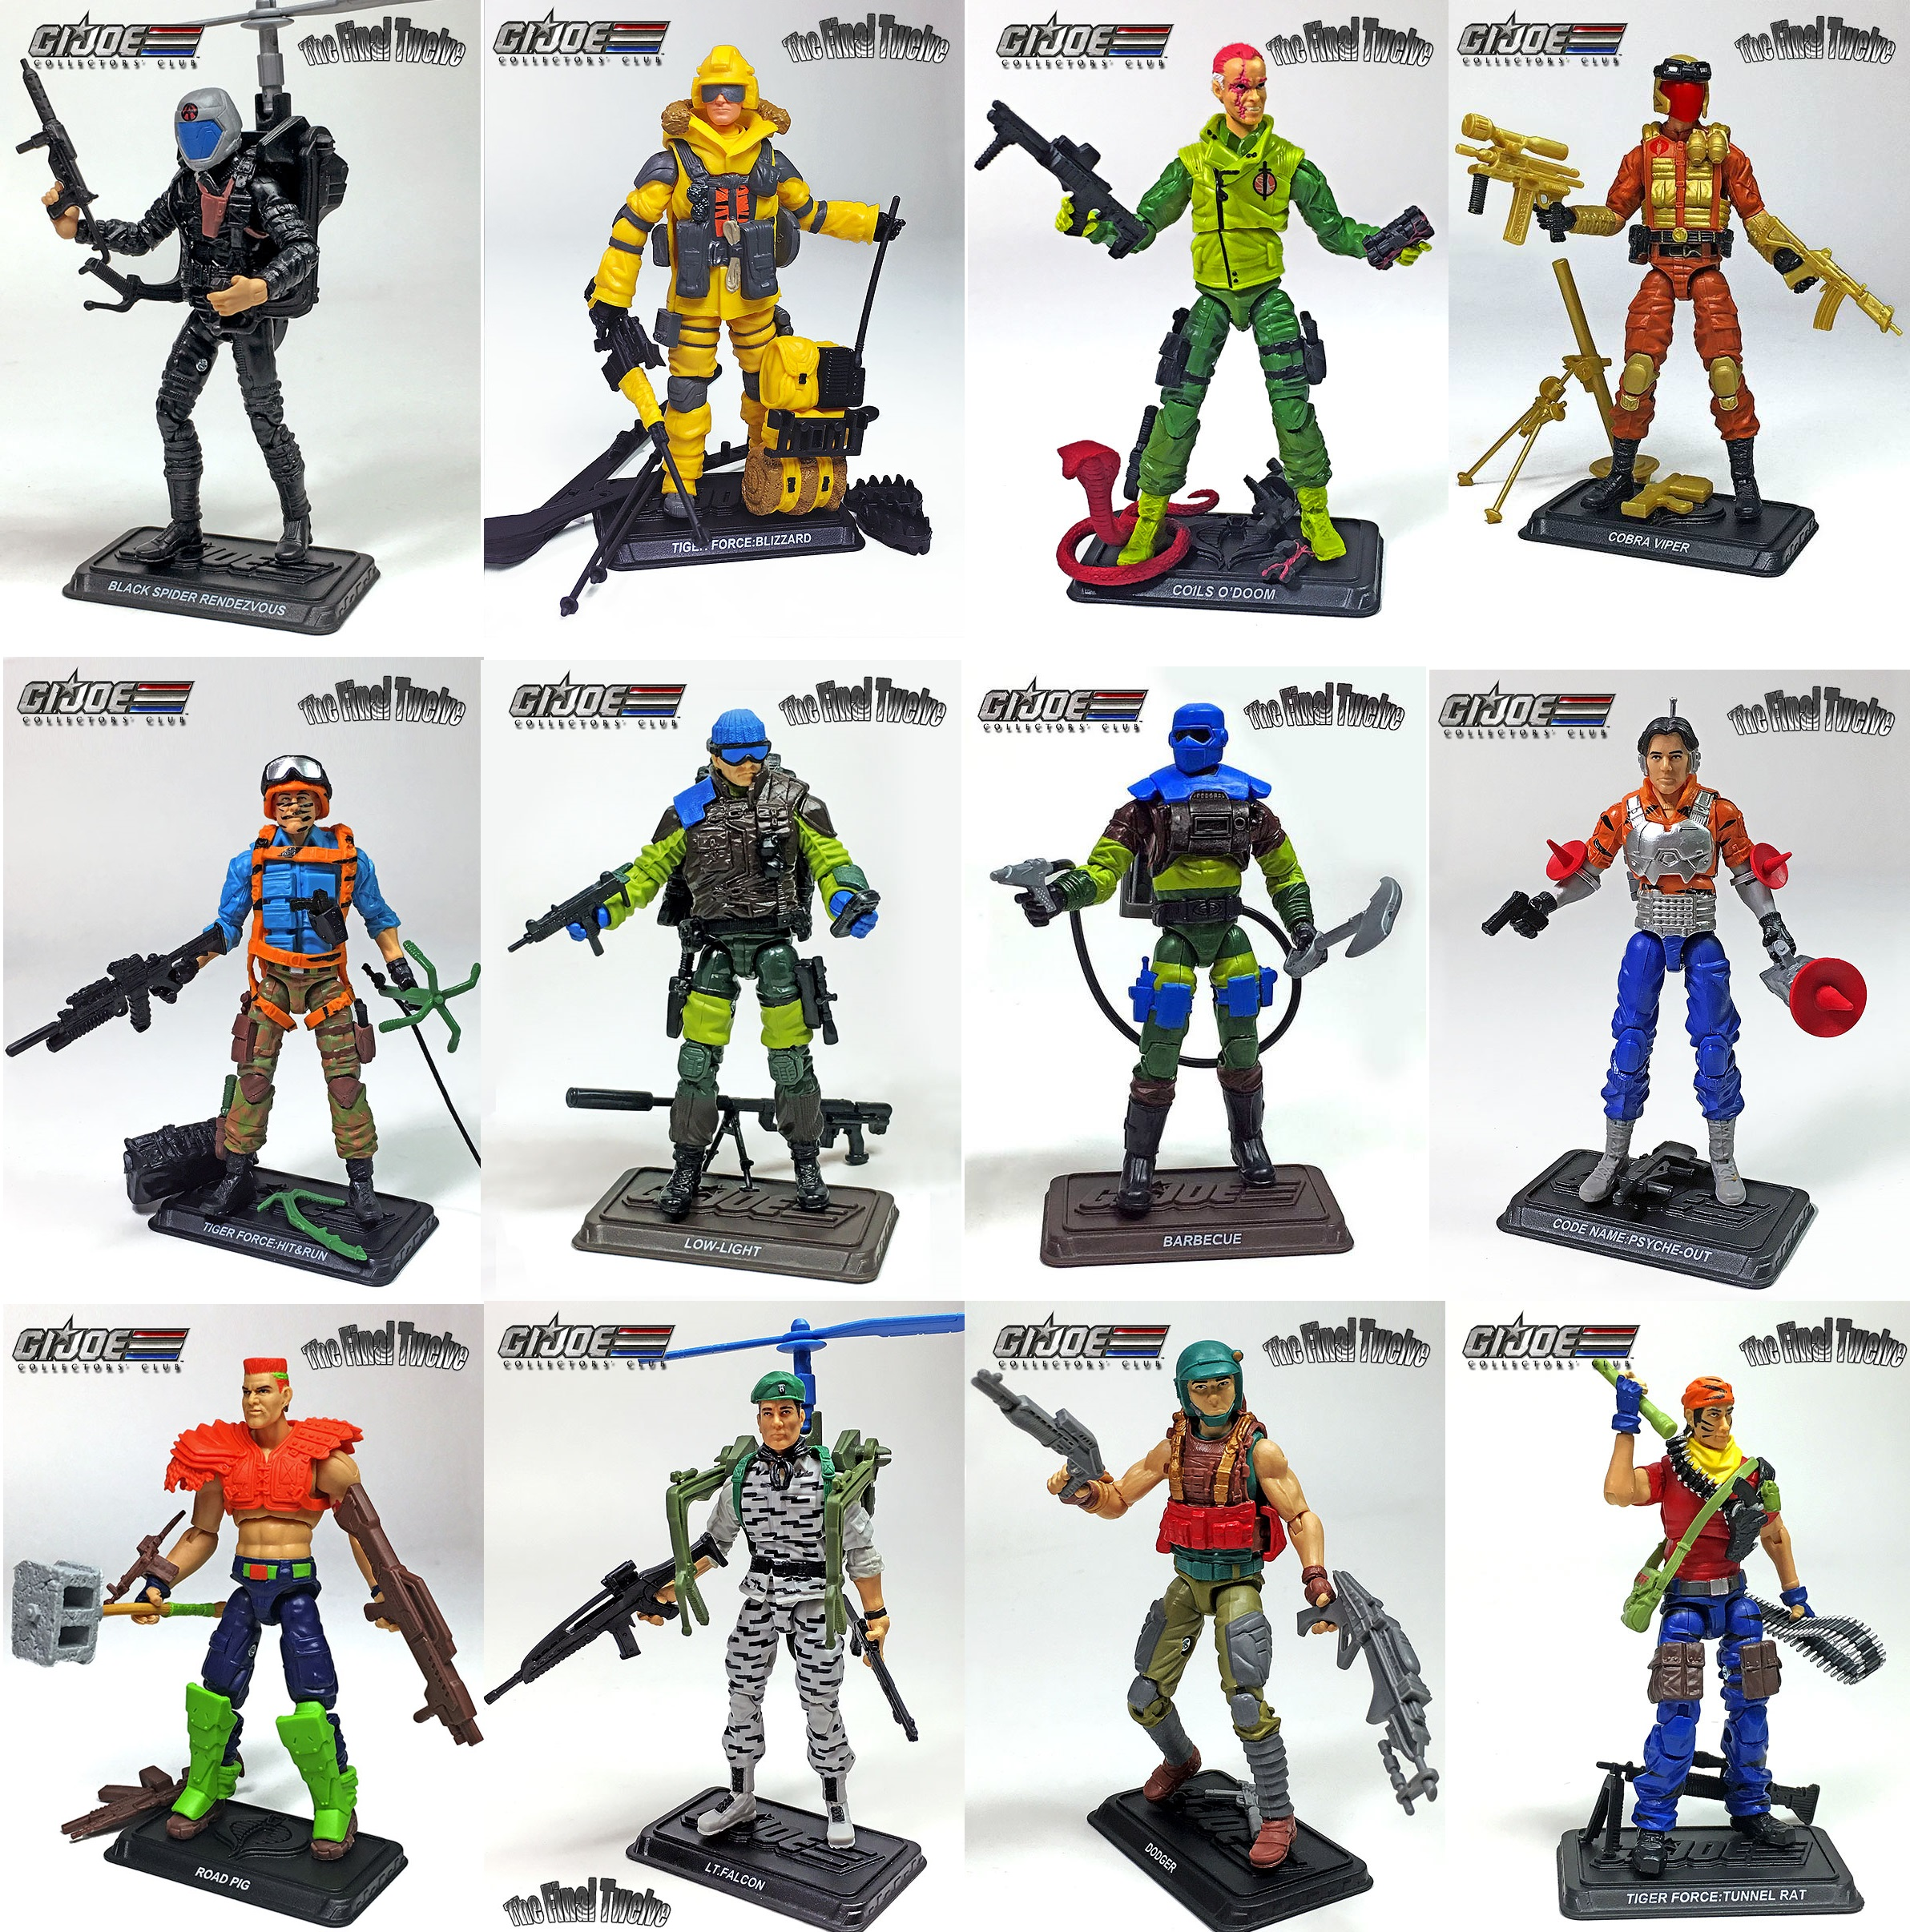 G.I Joe 25th 30th 50th FSS Club Exclusive Final 12 Tiger Force Blizzard MOC